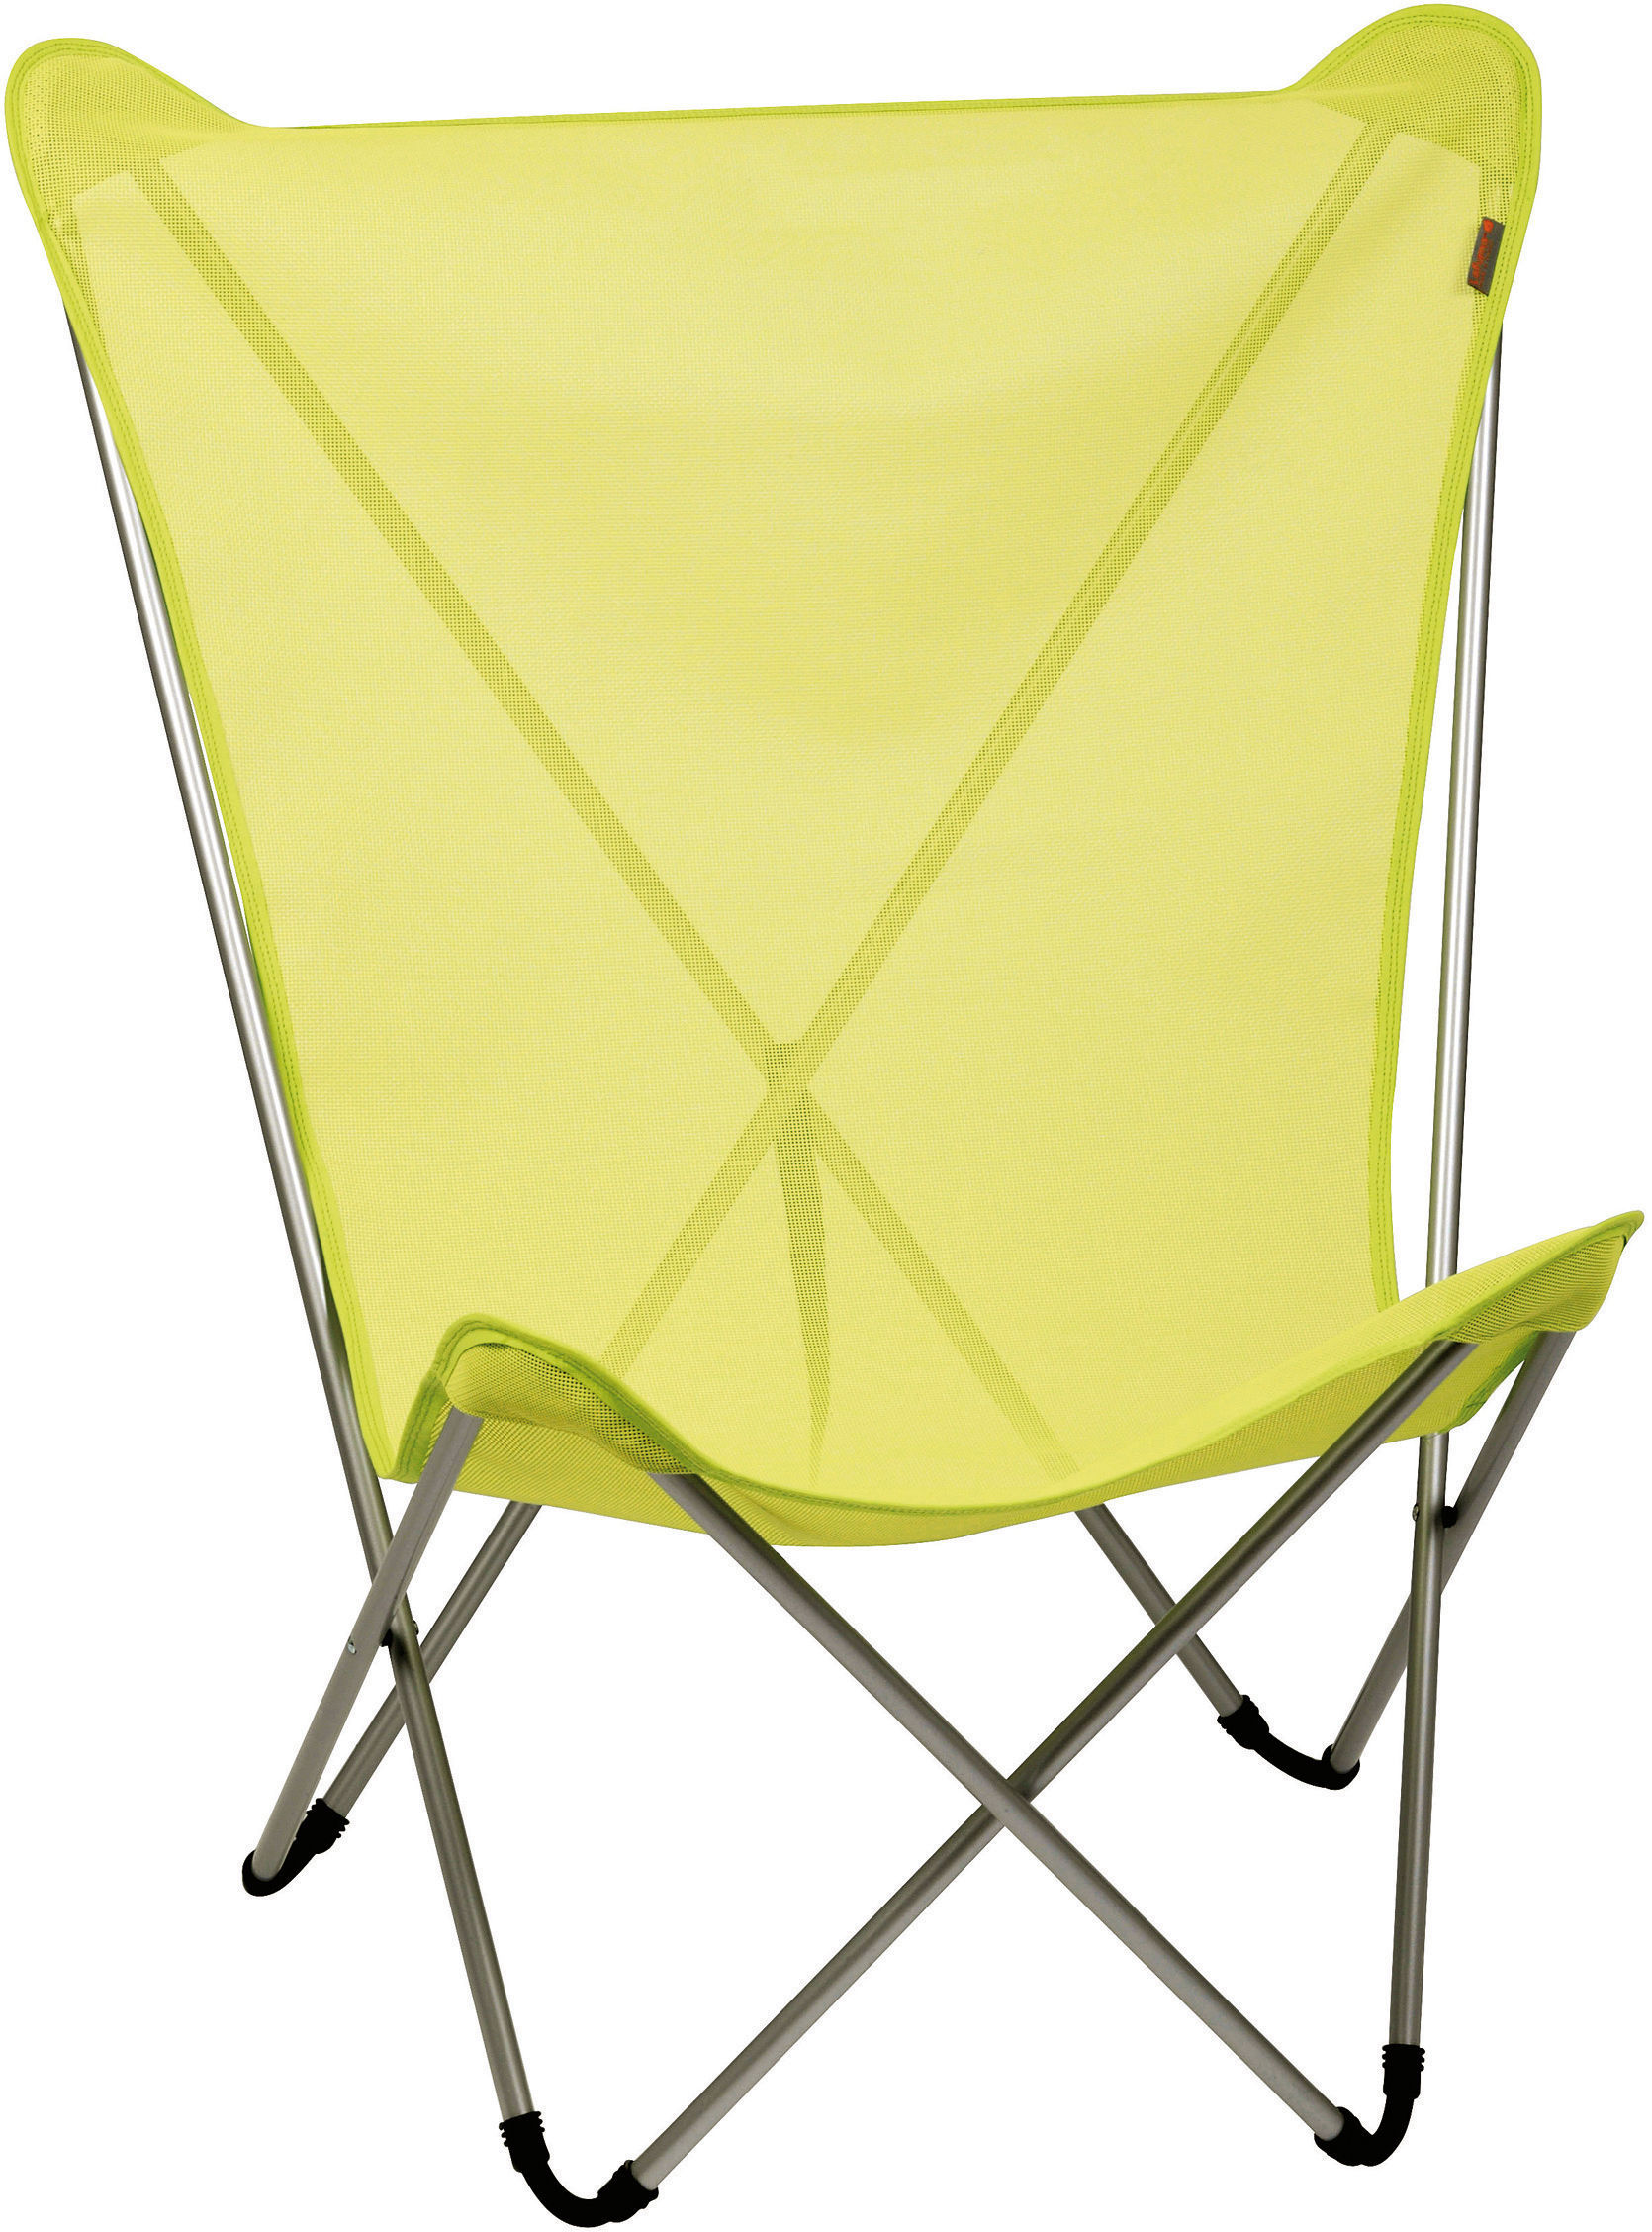 lafuma pop up chairs white slipcovered chair maxi armchair folding lime by